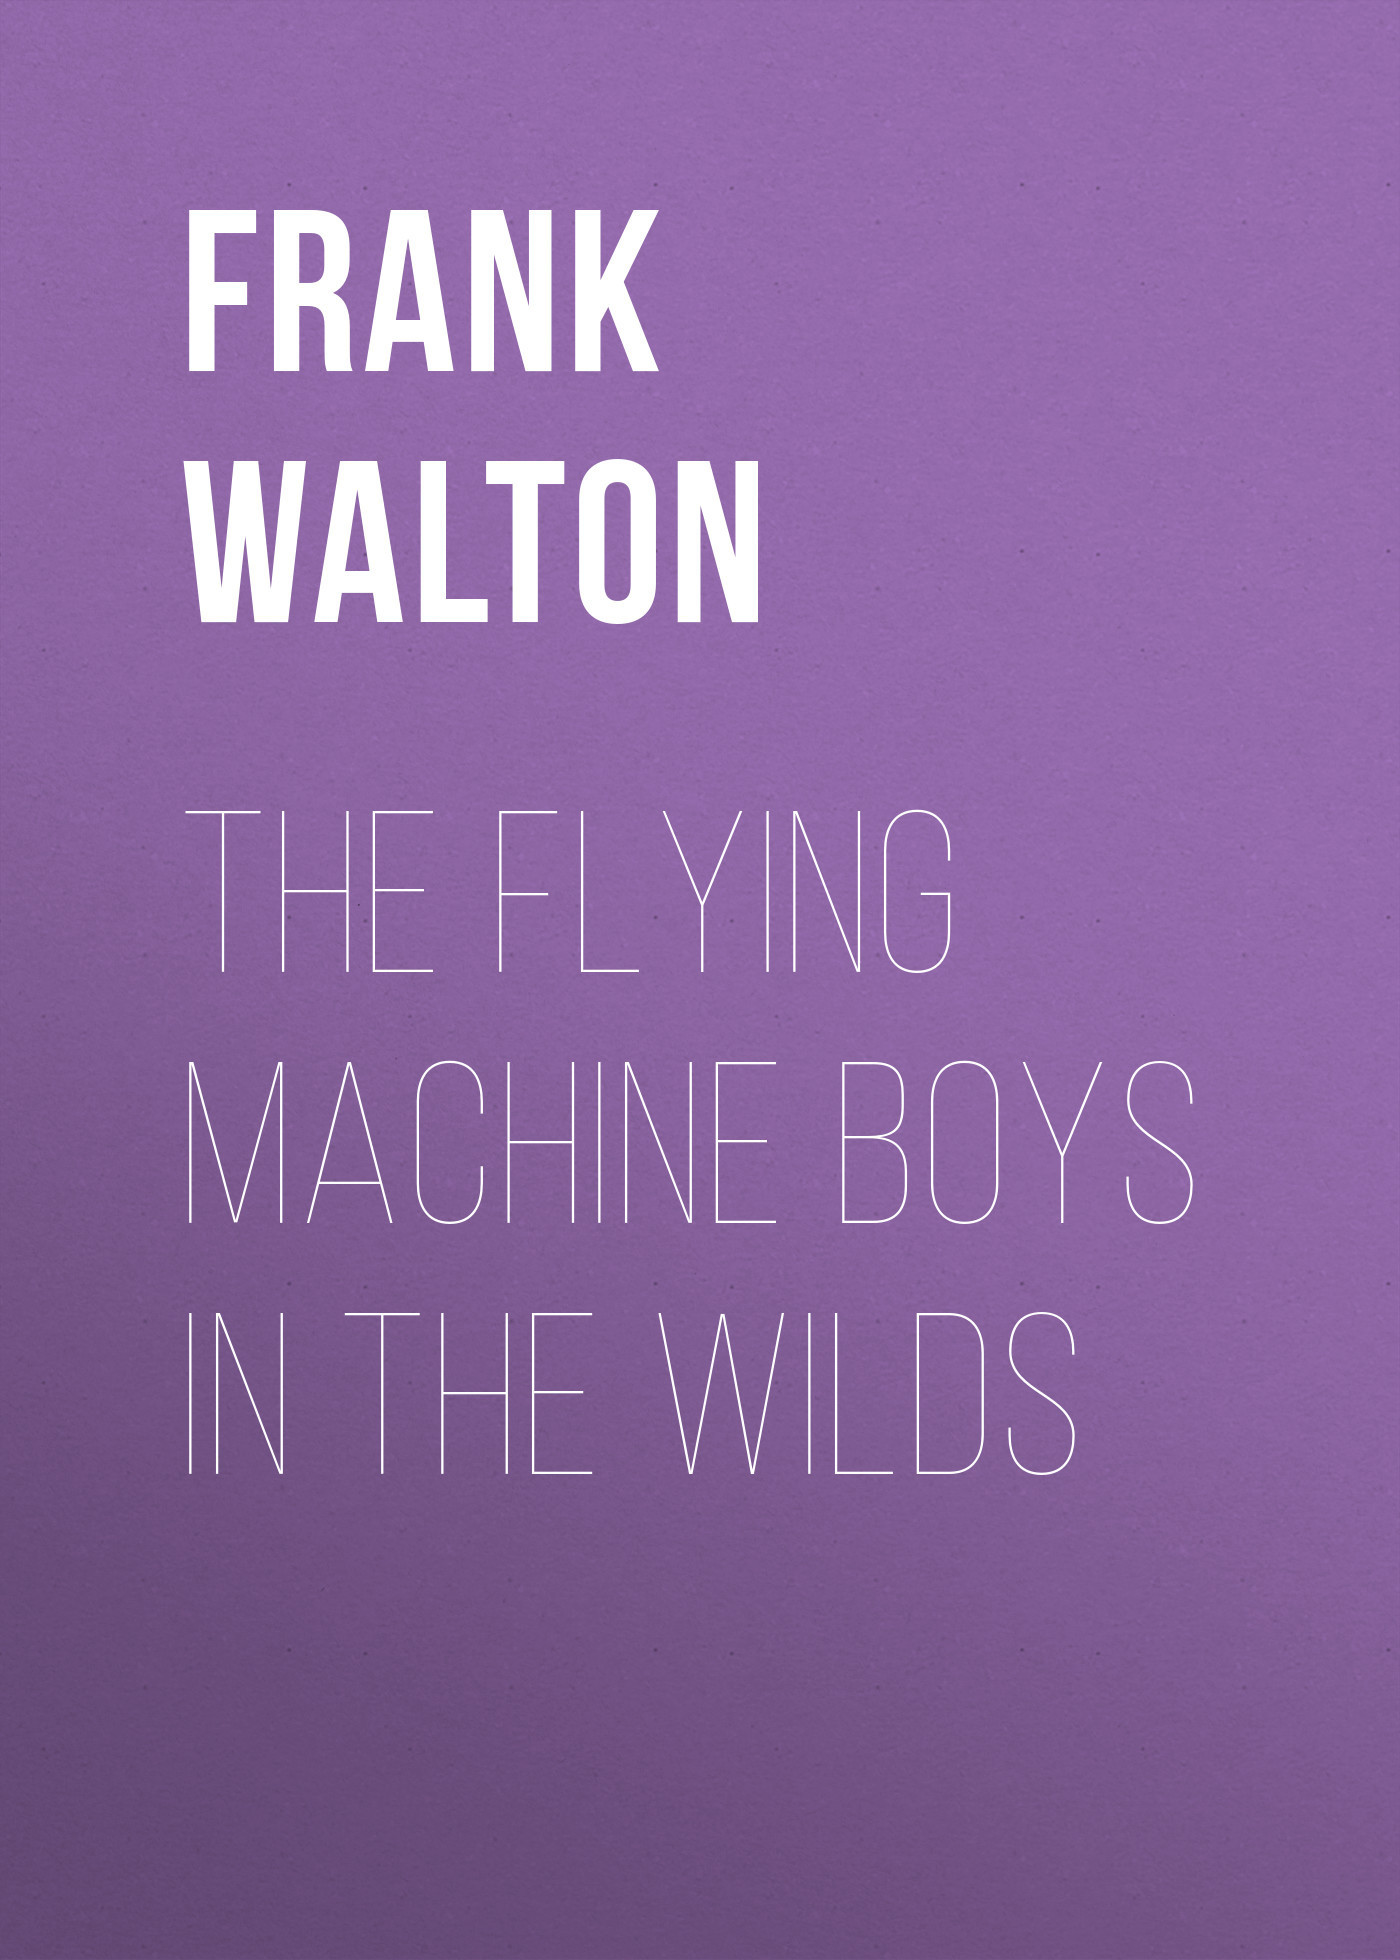 Frank Walton The Flying Machine Boys in the Wilds